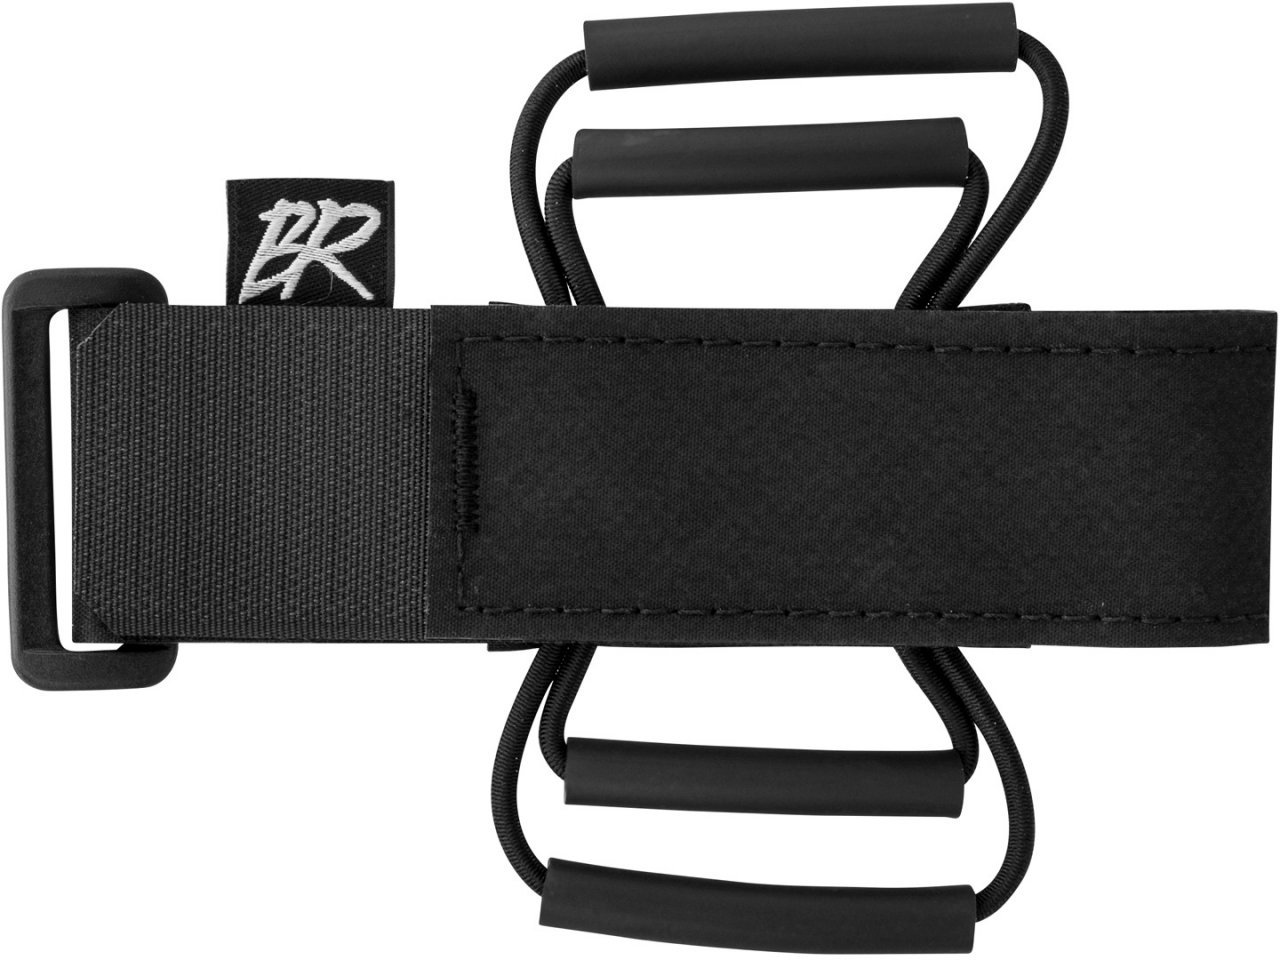 BACKCOUNTRY RESEARCH STRAP CUADRO - BACKCOUNTRY RESEARCH